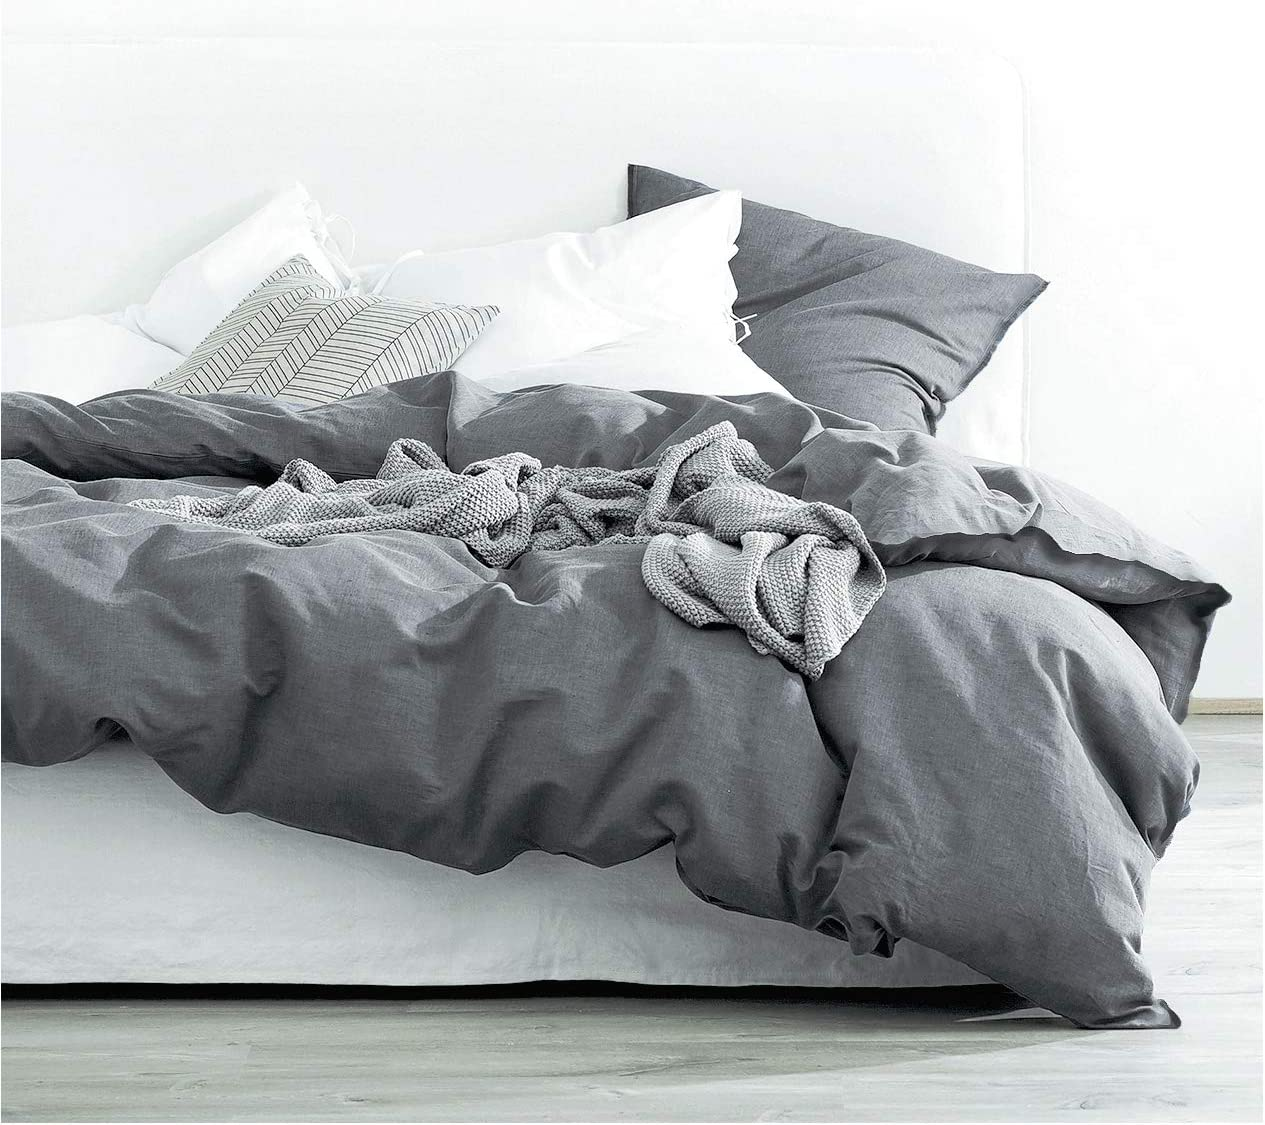 Eikei Washed Cotton Chambray Duvet Cover Solid Color Casual Modern Style Bedding Set Relaxed Soft Feel Natural Wrinkled Look (King, Charcoal)